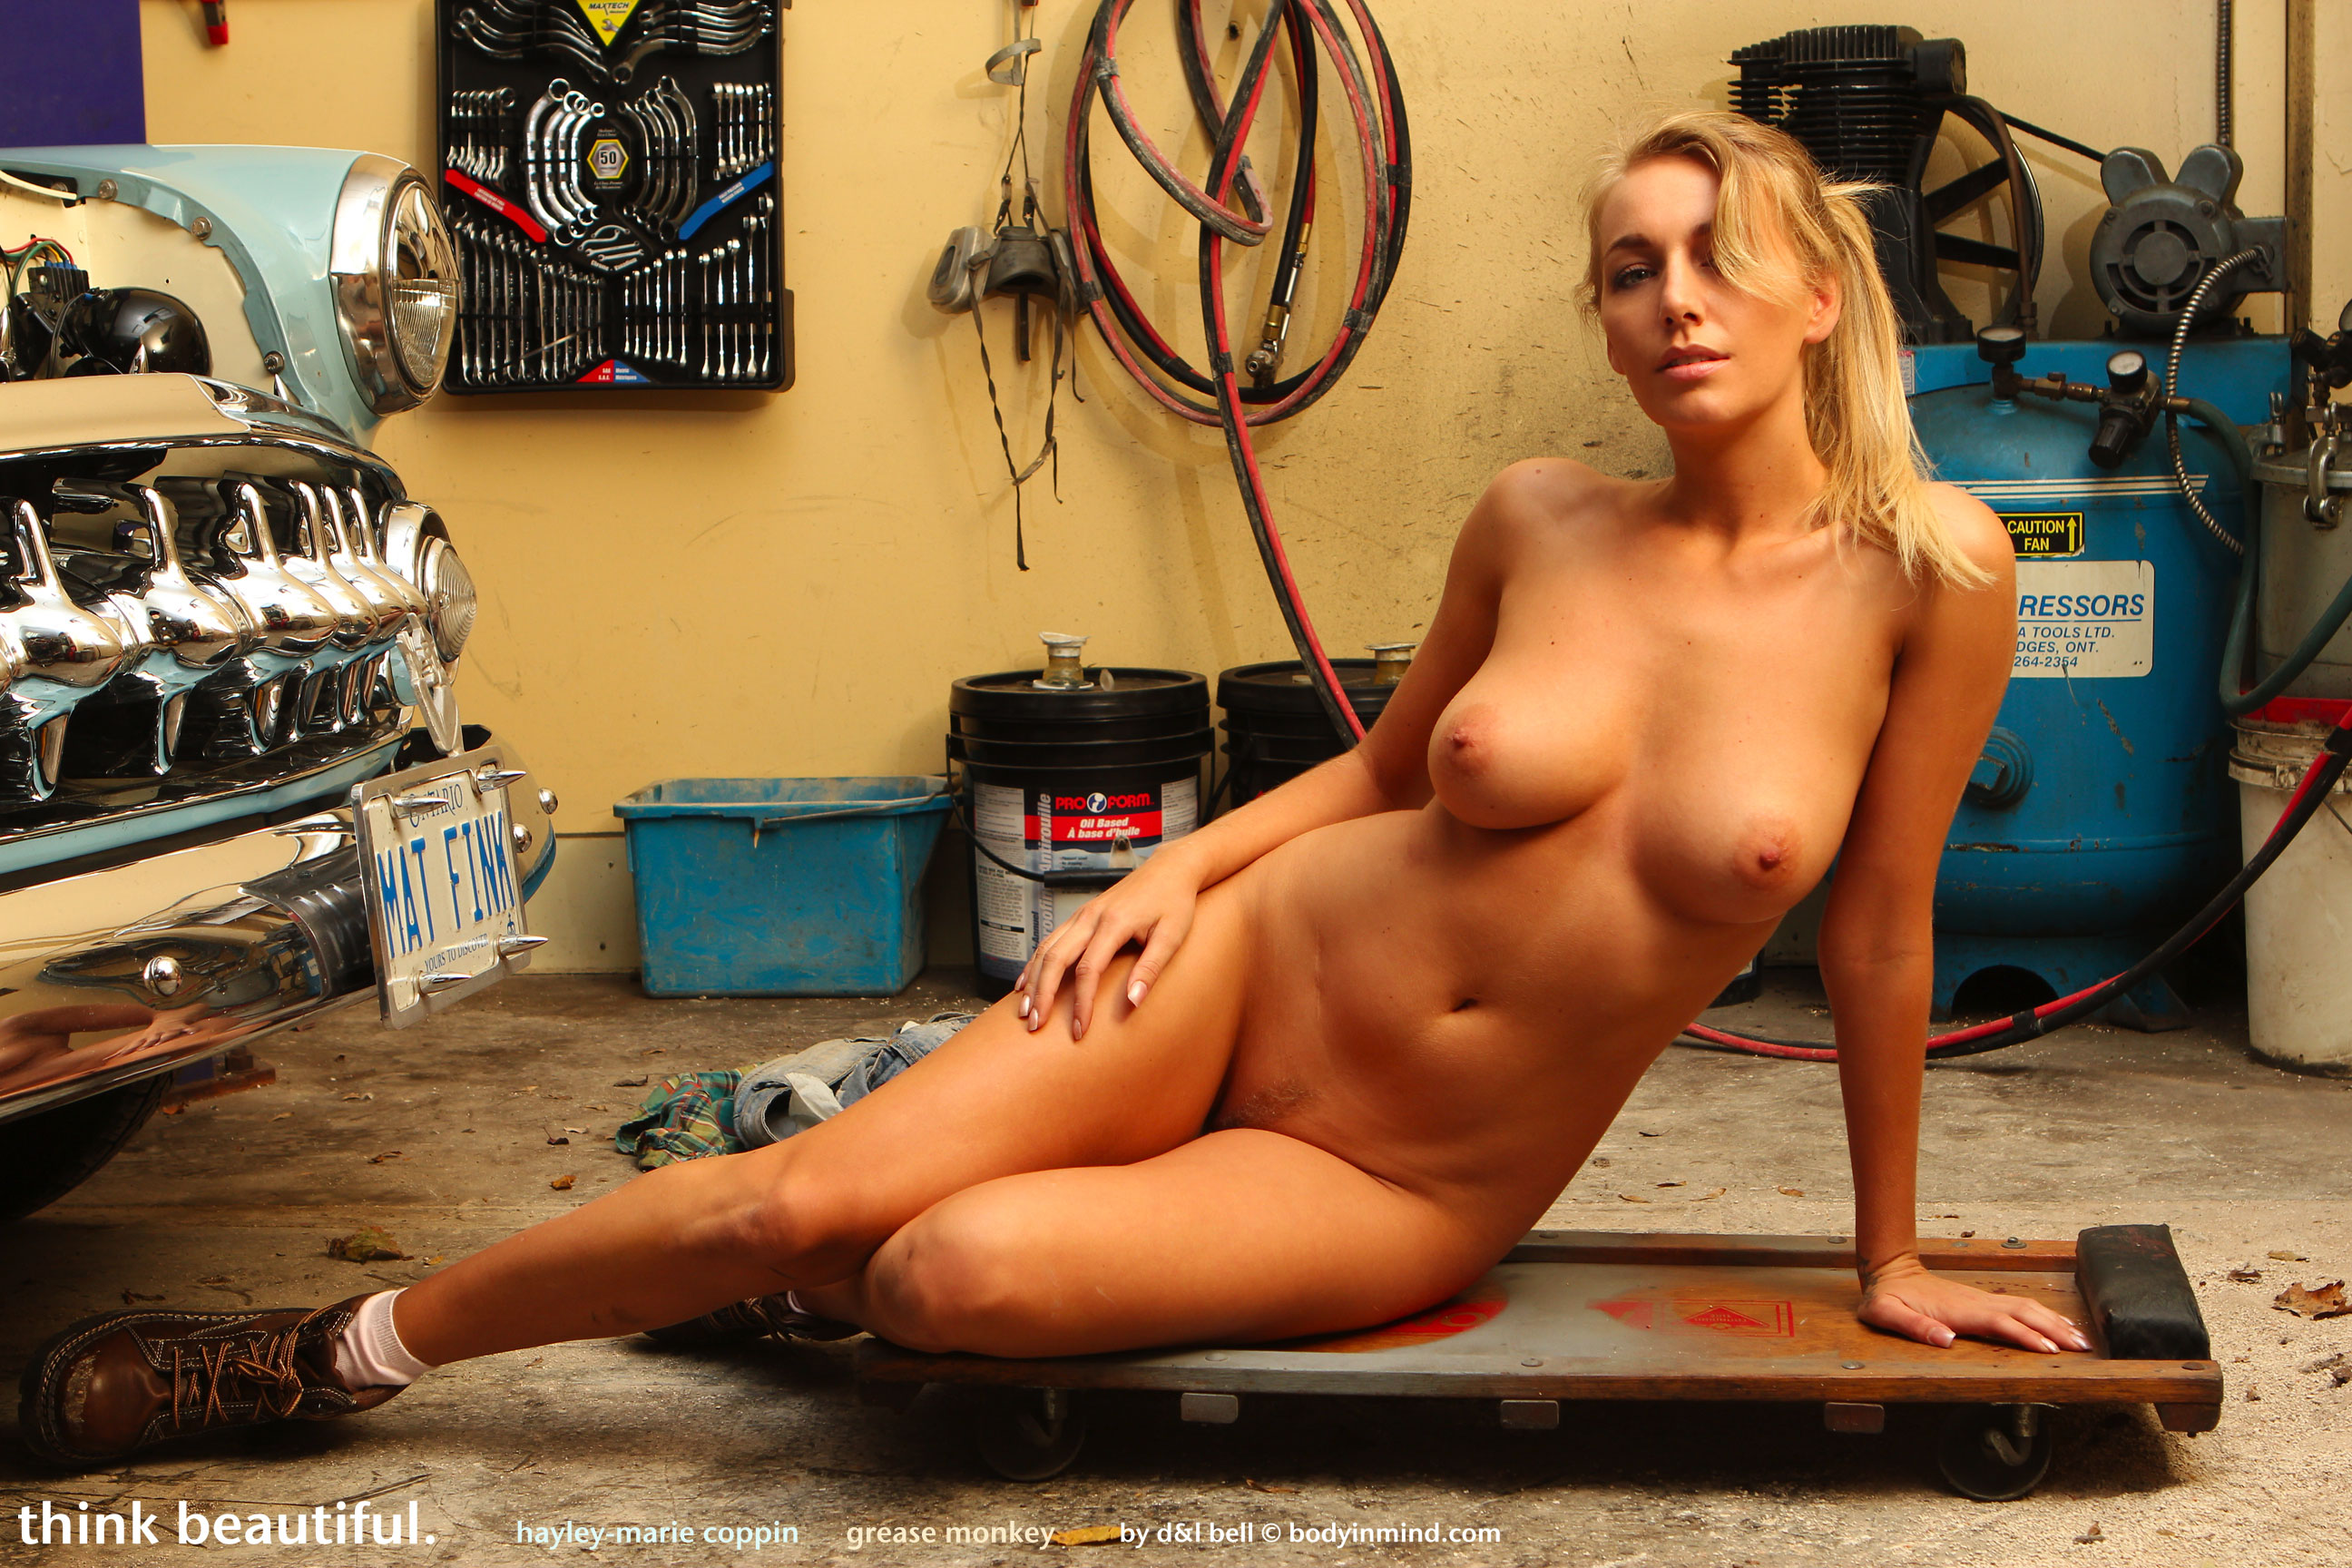 Girl Mechanic Nude hayley marie the stripping mechanic - sexy gallery full